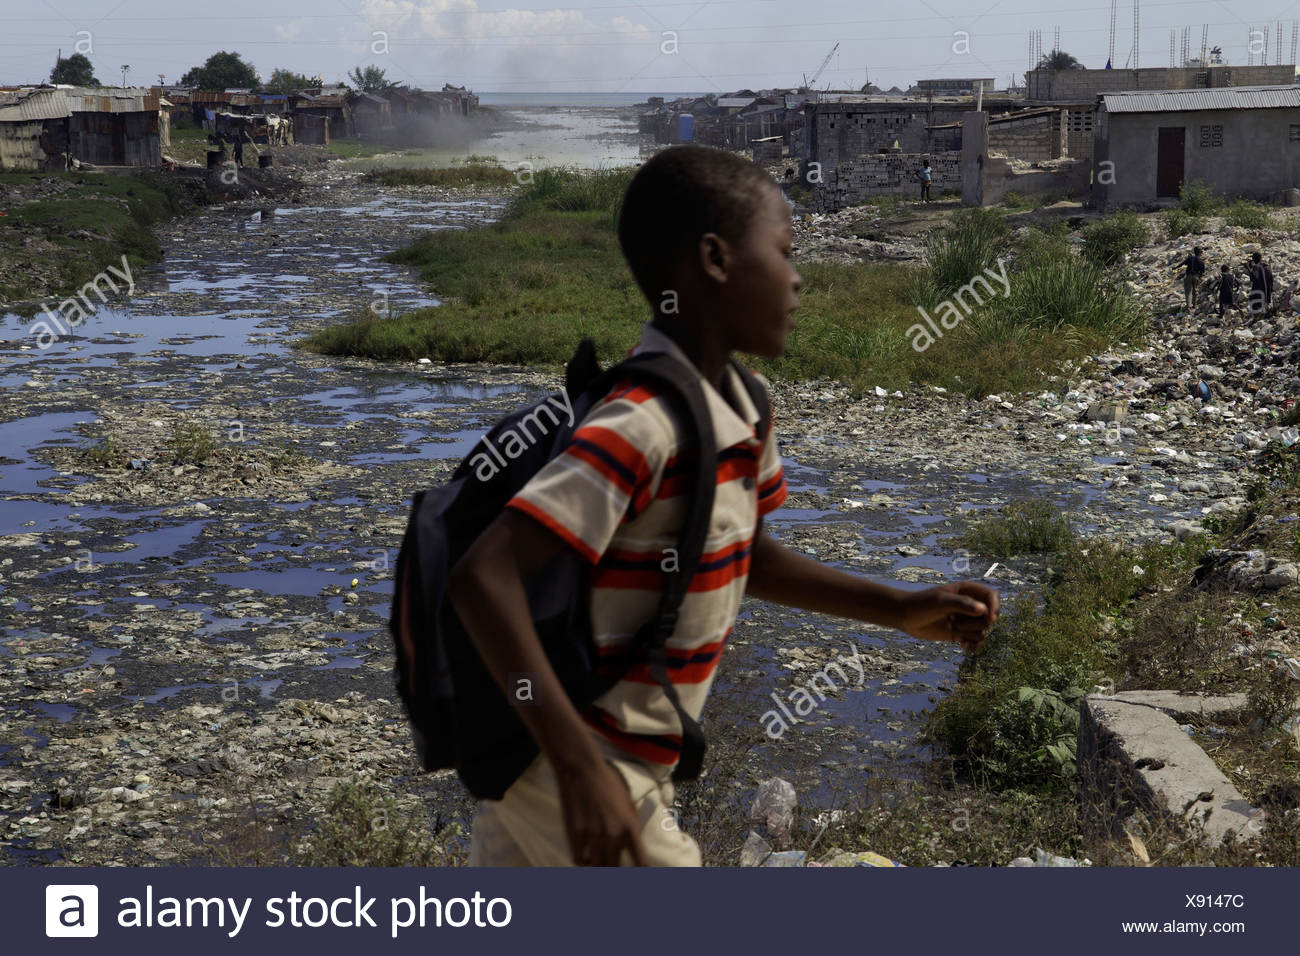 Canal with raw sewage in Port-au-Prince, Haiti Stock Photo